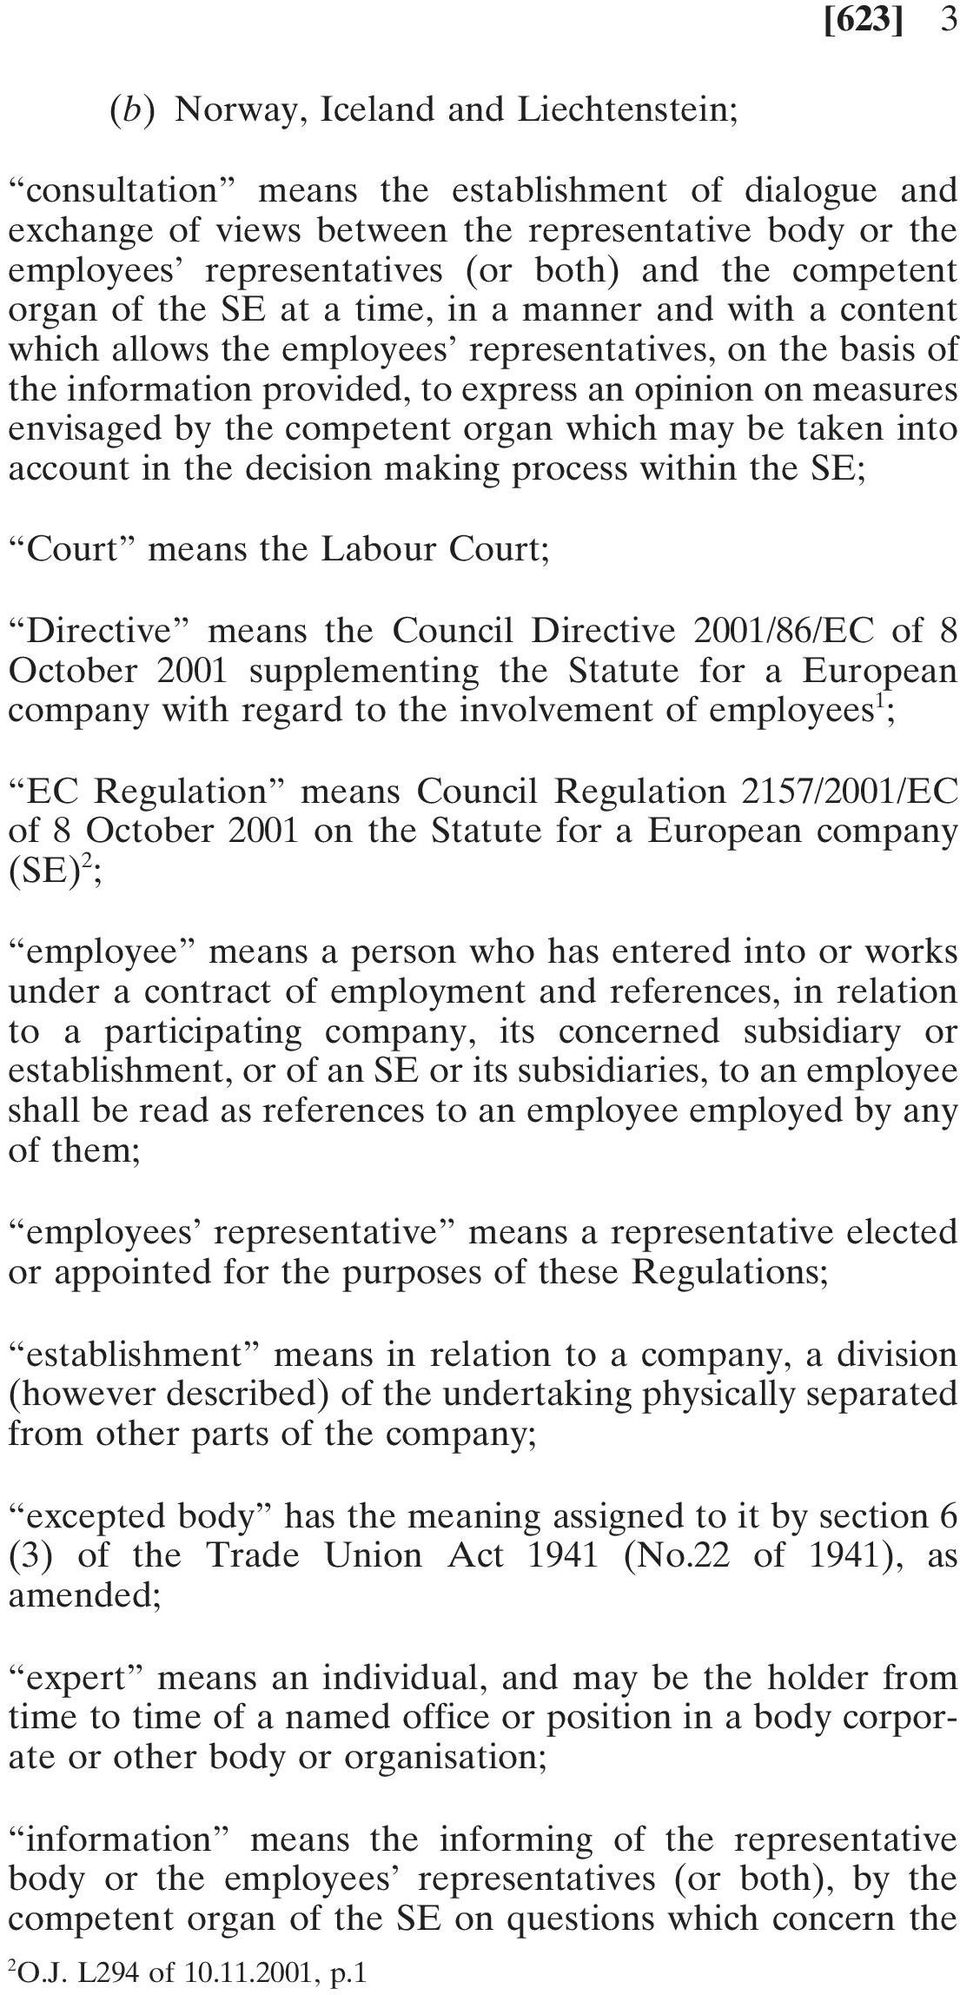 envisaged by the competent organ which may be taken into account in the decision making process within the SE; Court means the Labour Court; Directive means the Council Directive 2001/86/EC of 8